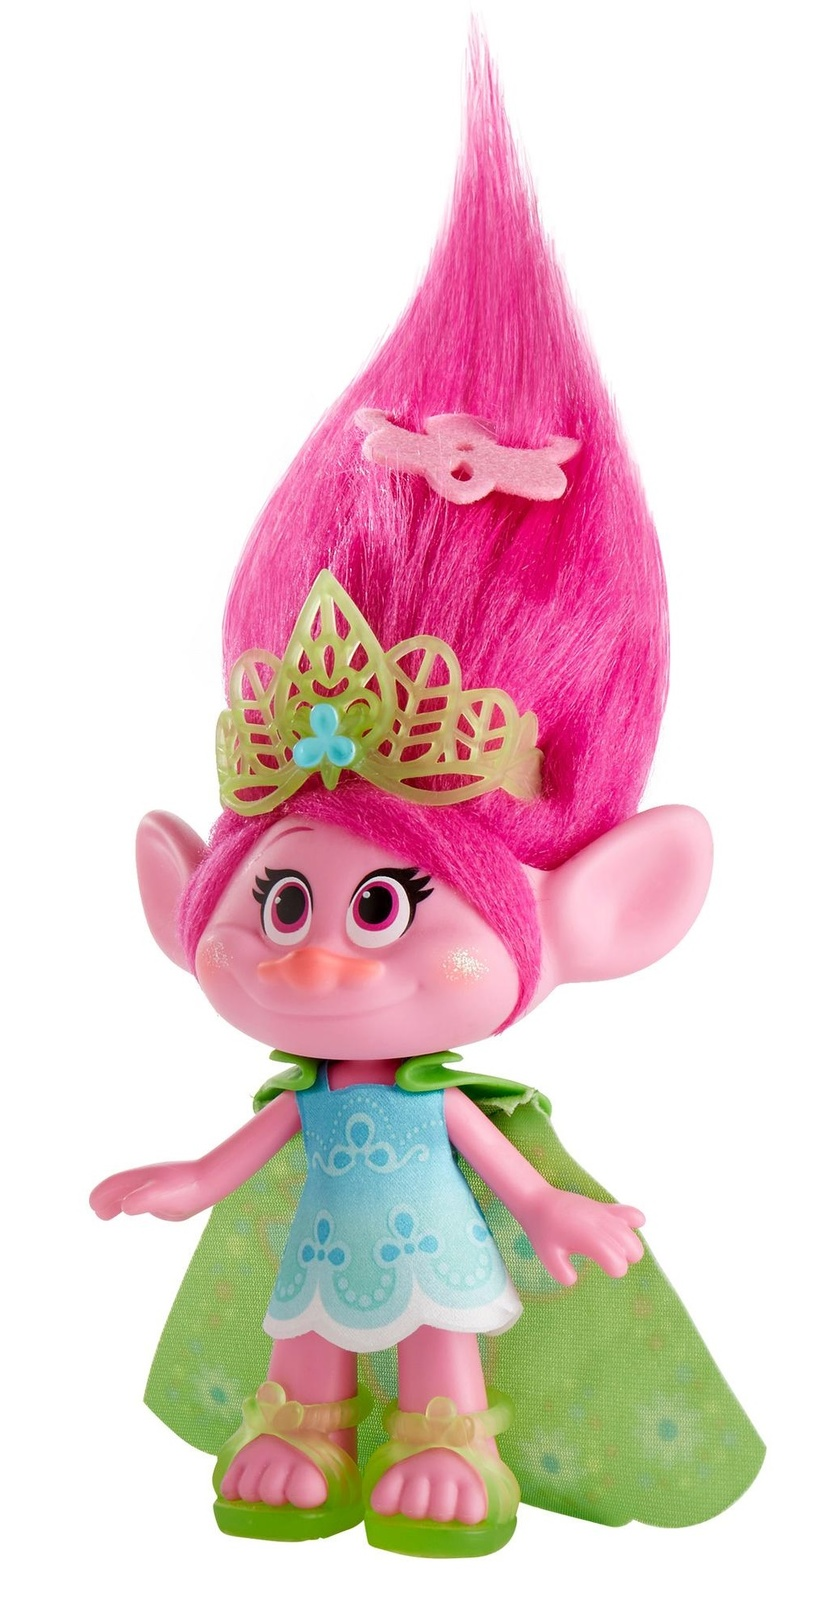 Dreamworks Trolls Poppy 9 Quot Doll Toy At Mighty Ape Nz